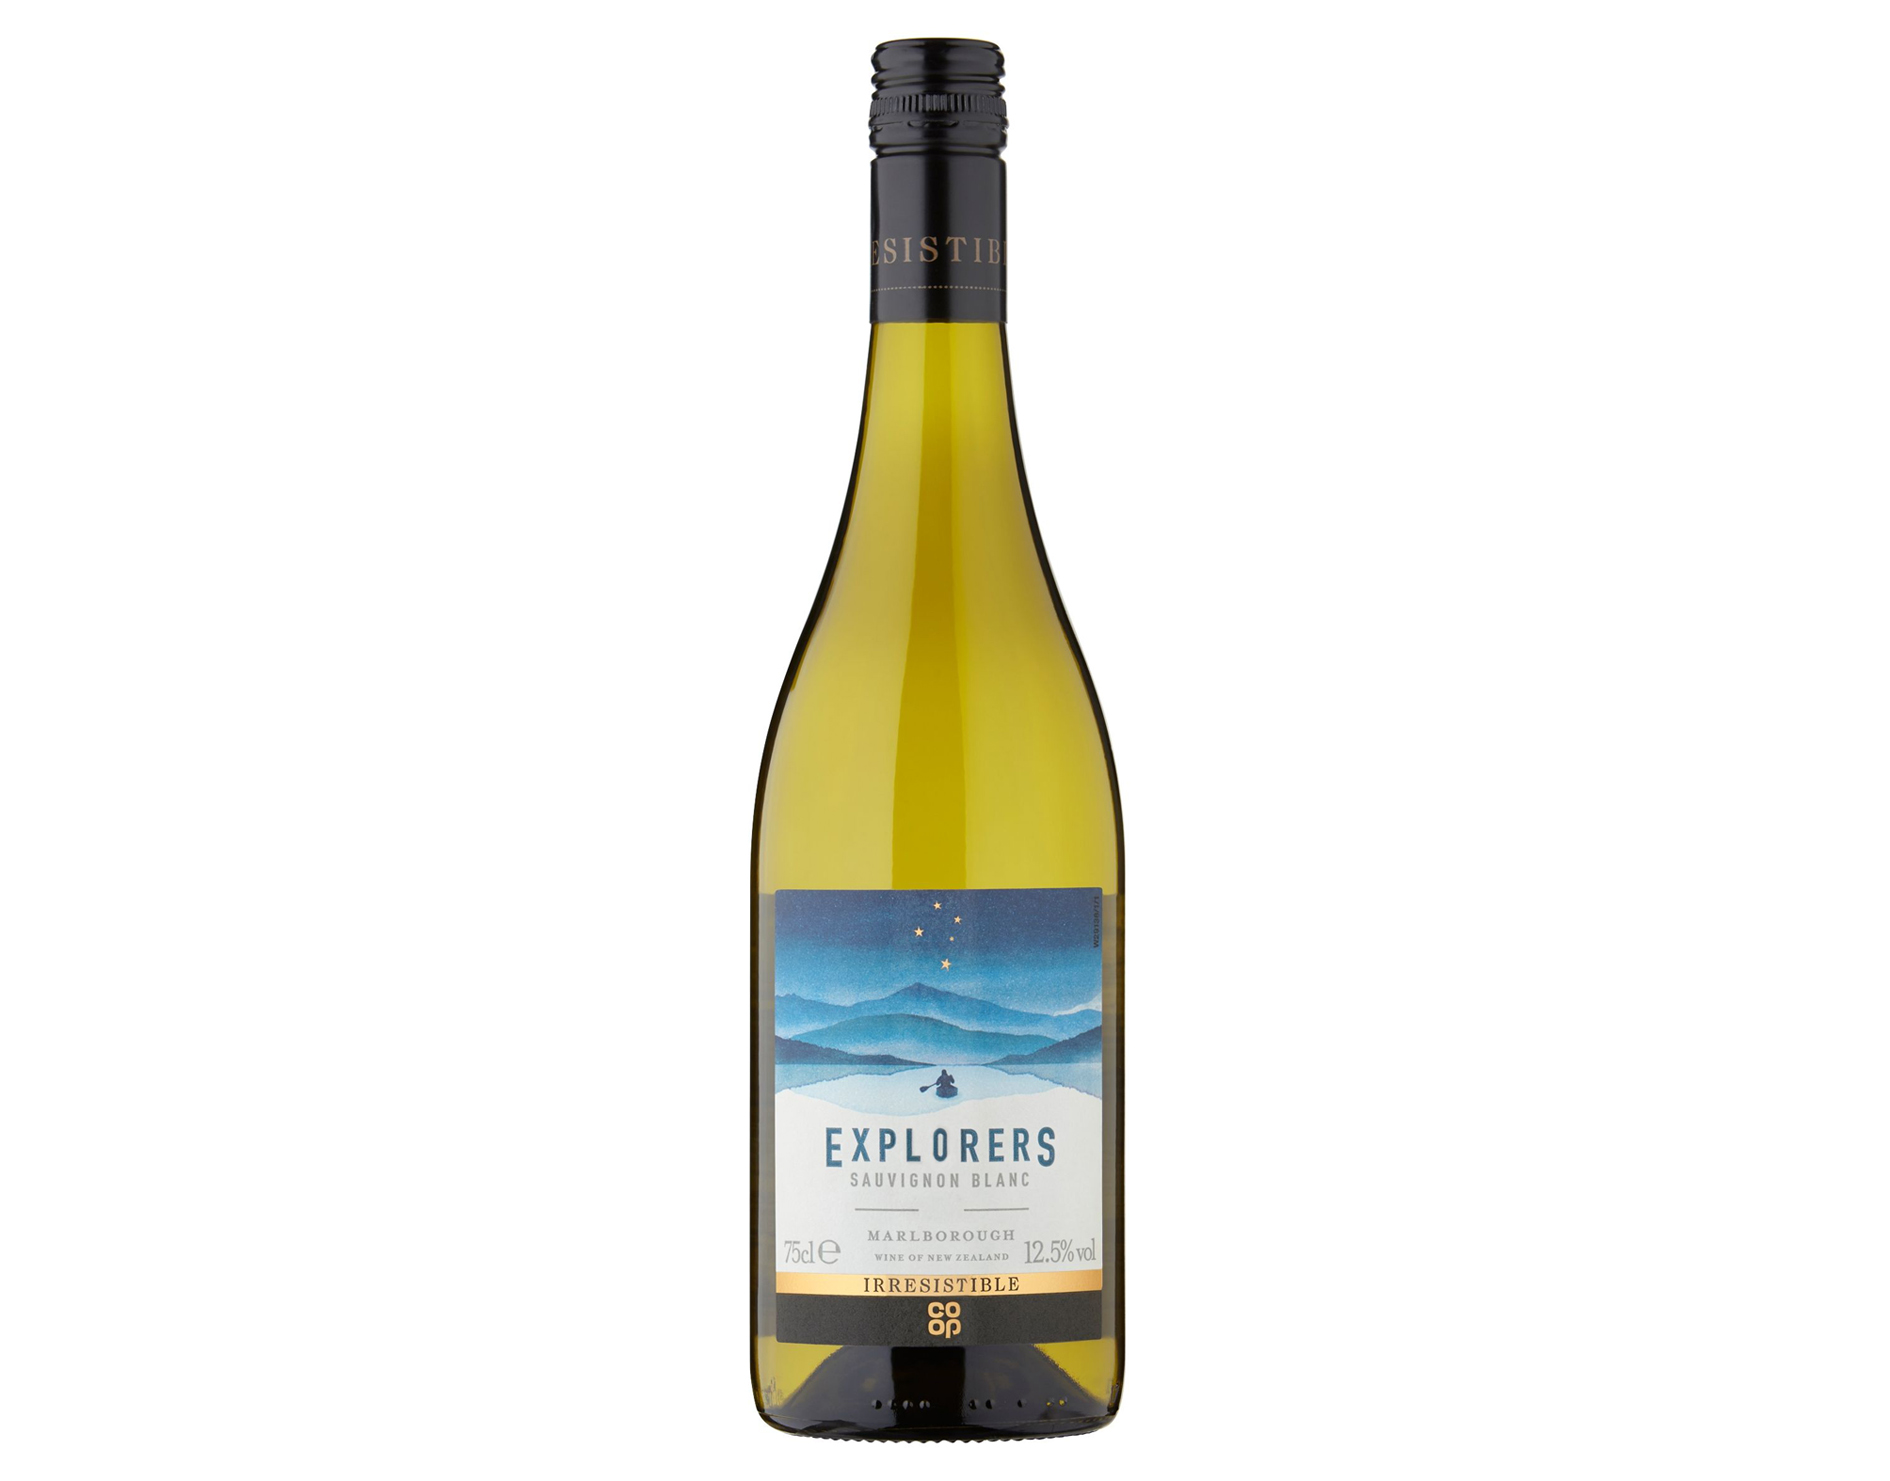 Co-op Irresistible Explorer's Marlborough Sauvignon Blanc, New Zealand